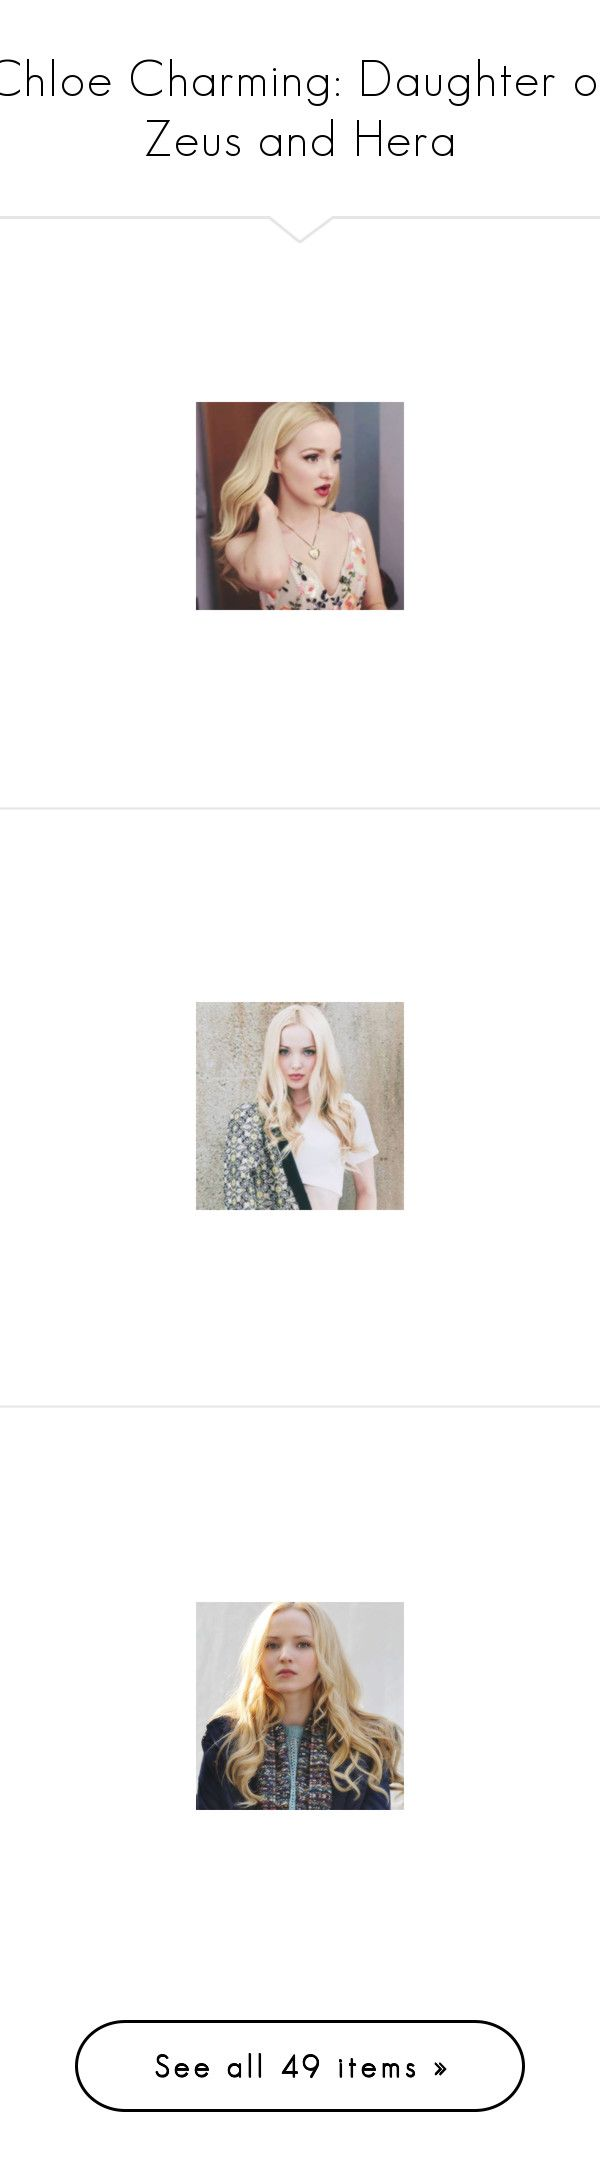 """Chloe Charming: Daughter of Zeus and Hera"" by hpf1102 ❤ liked on Polyvore featuring dove cameron, backgrounds, pictures, faces, image, blue, water, blue pics, pics and witch"